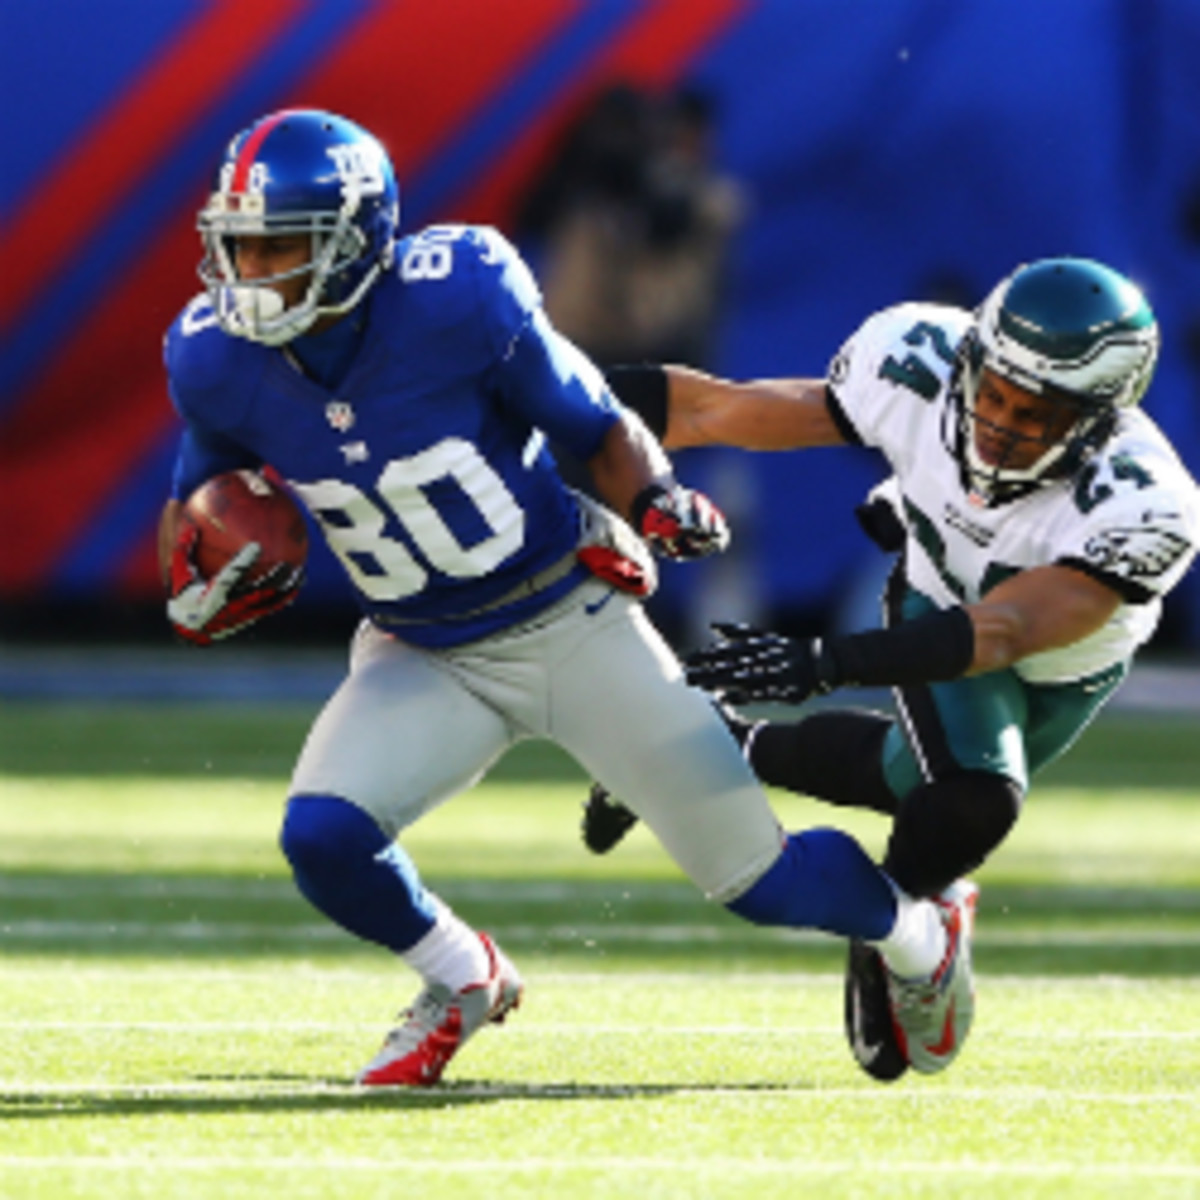 Giants receiver Victor Cruz will reportedly partner with Jay-Z's new sports management firm. (Al Bello/Getty Images)